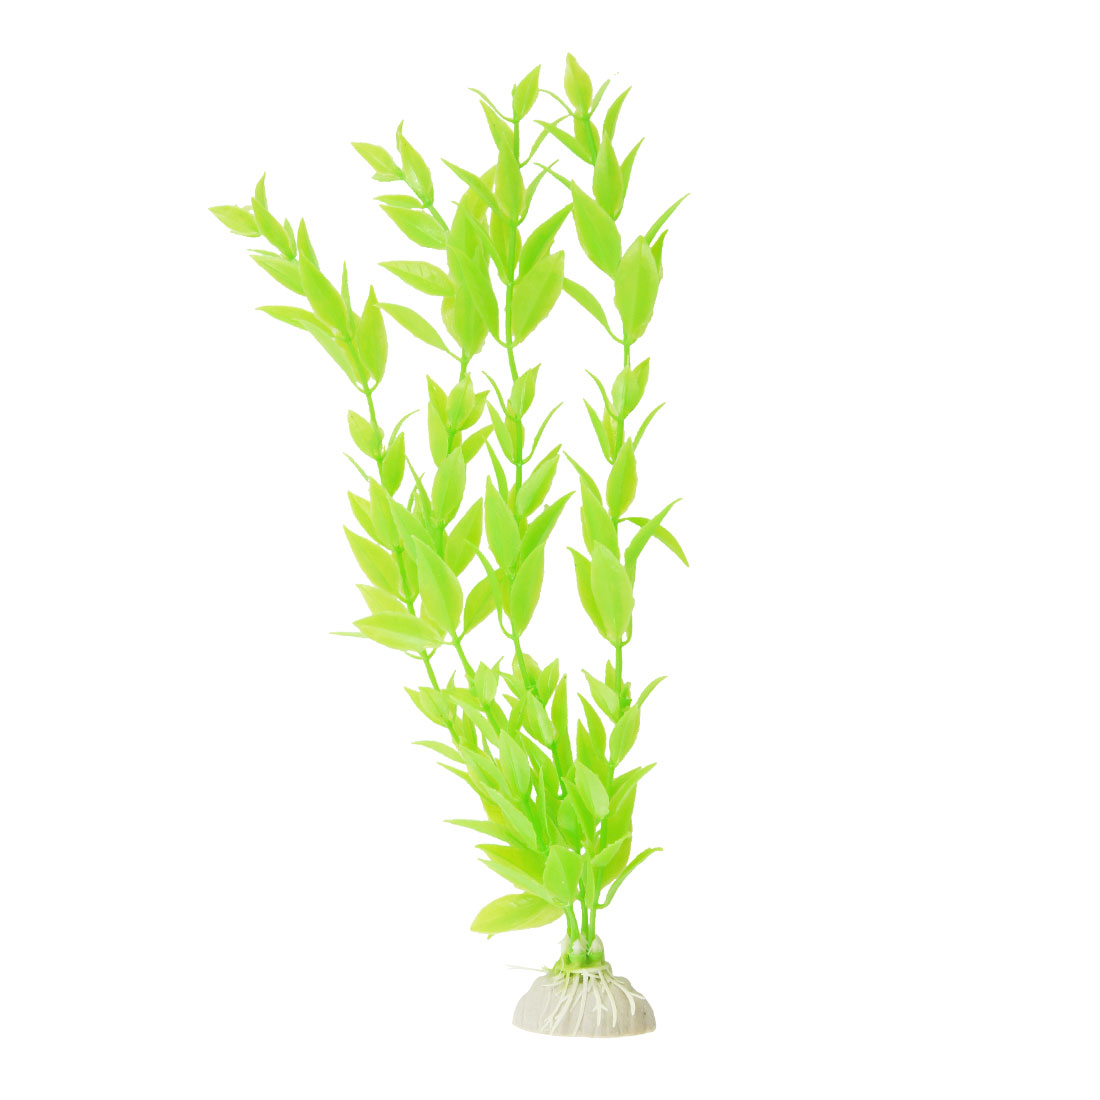 "Aquarium Green Plastic Plant Grass 11"" Height Decoration"